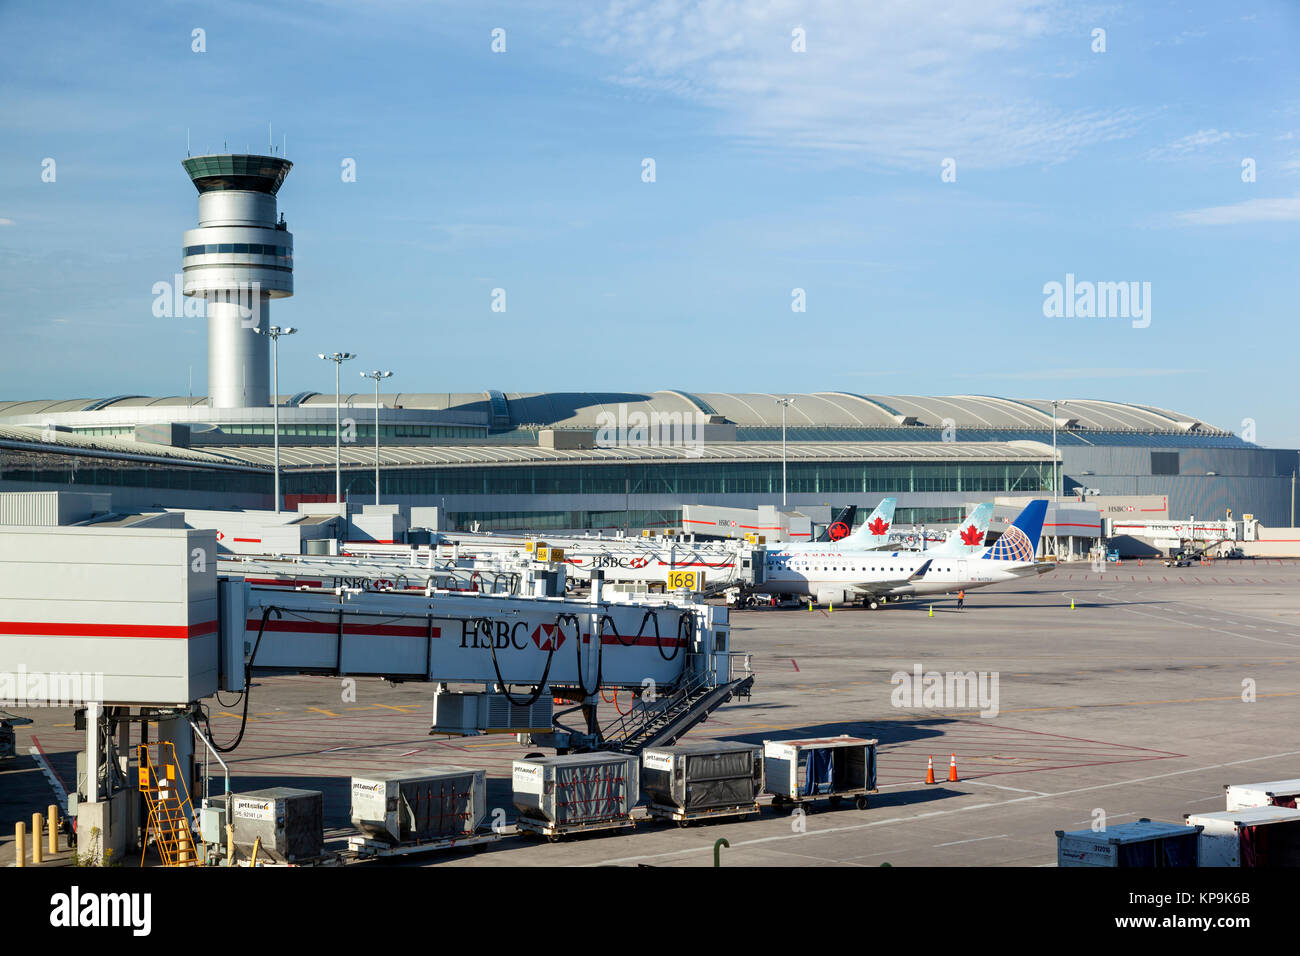 Toronto Pearson International Airport (YYZ IATA) is in Mississauga near Toronto. As Canada's busiest airport, it handled million passengers in